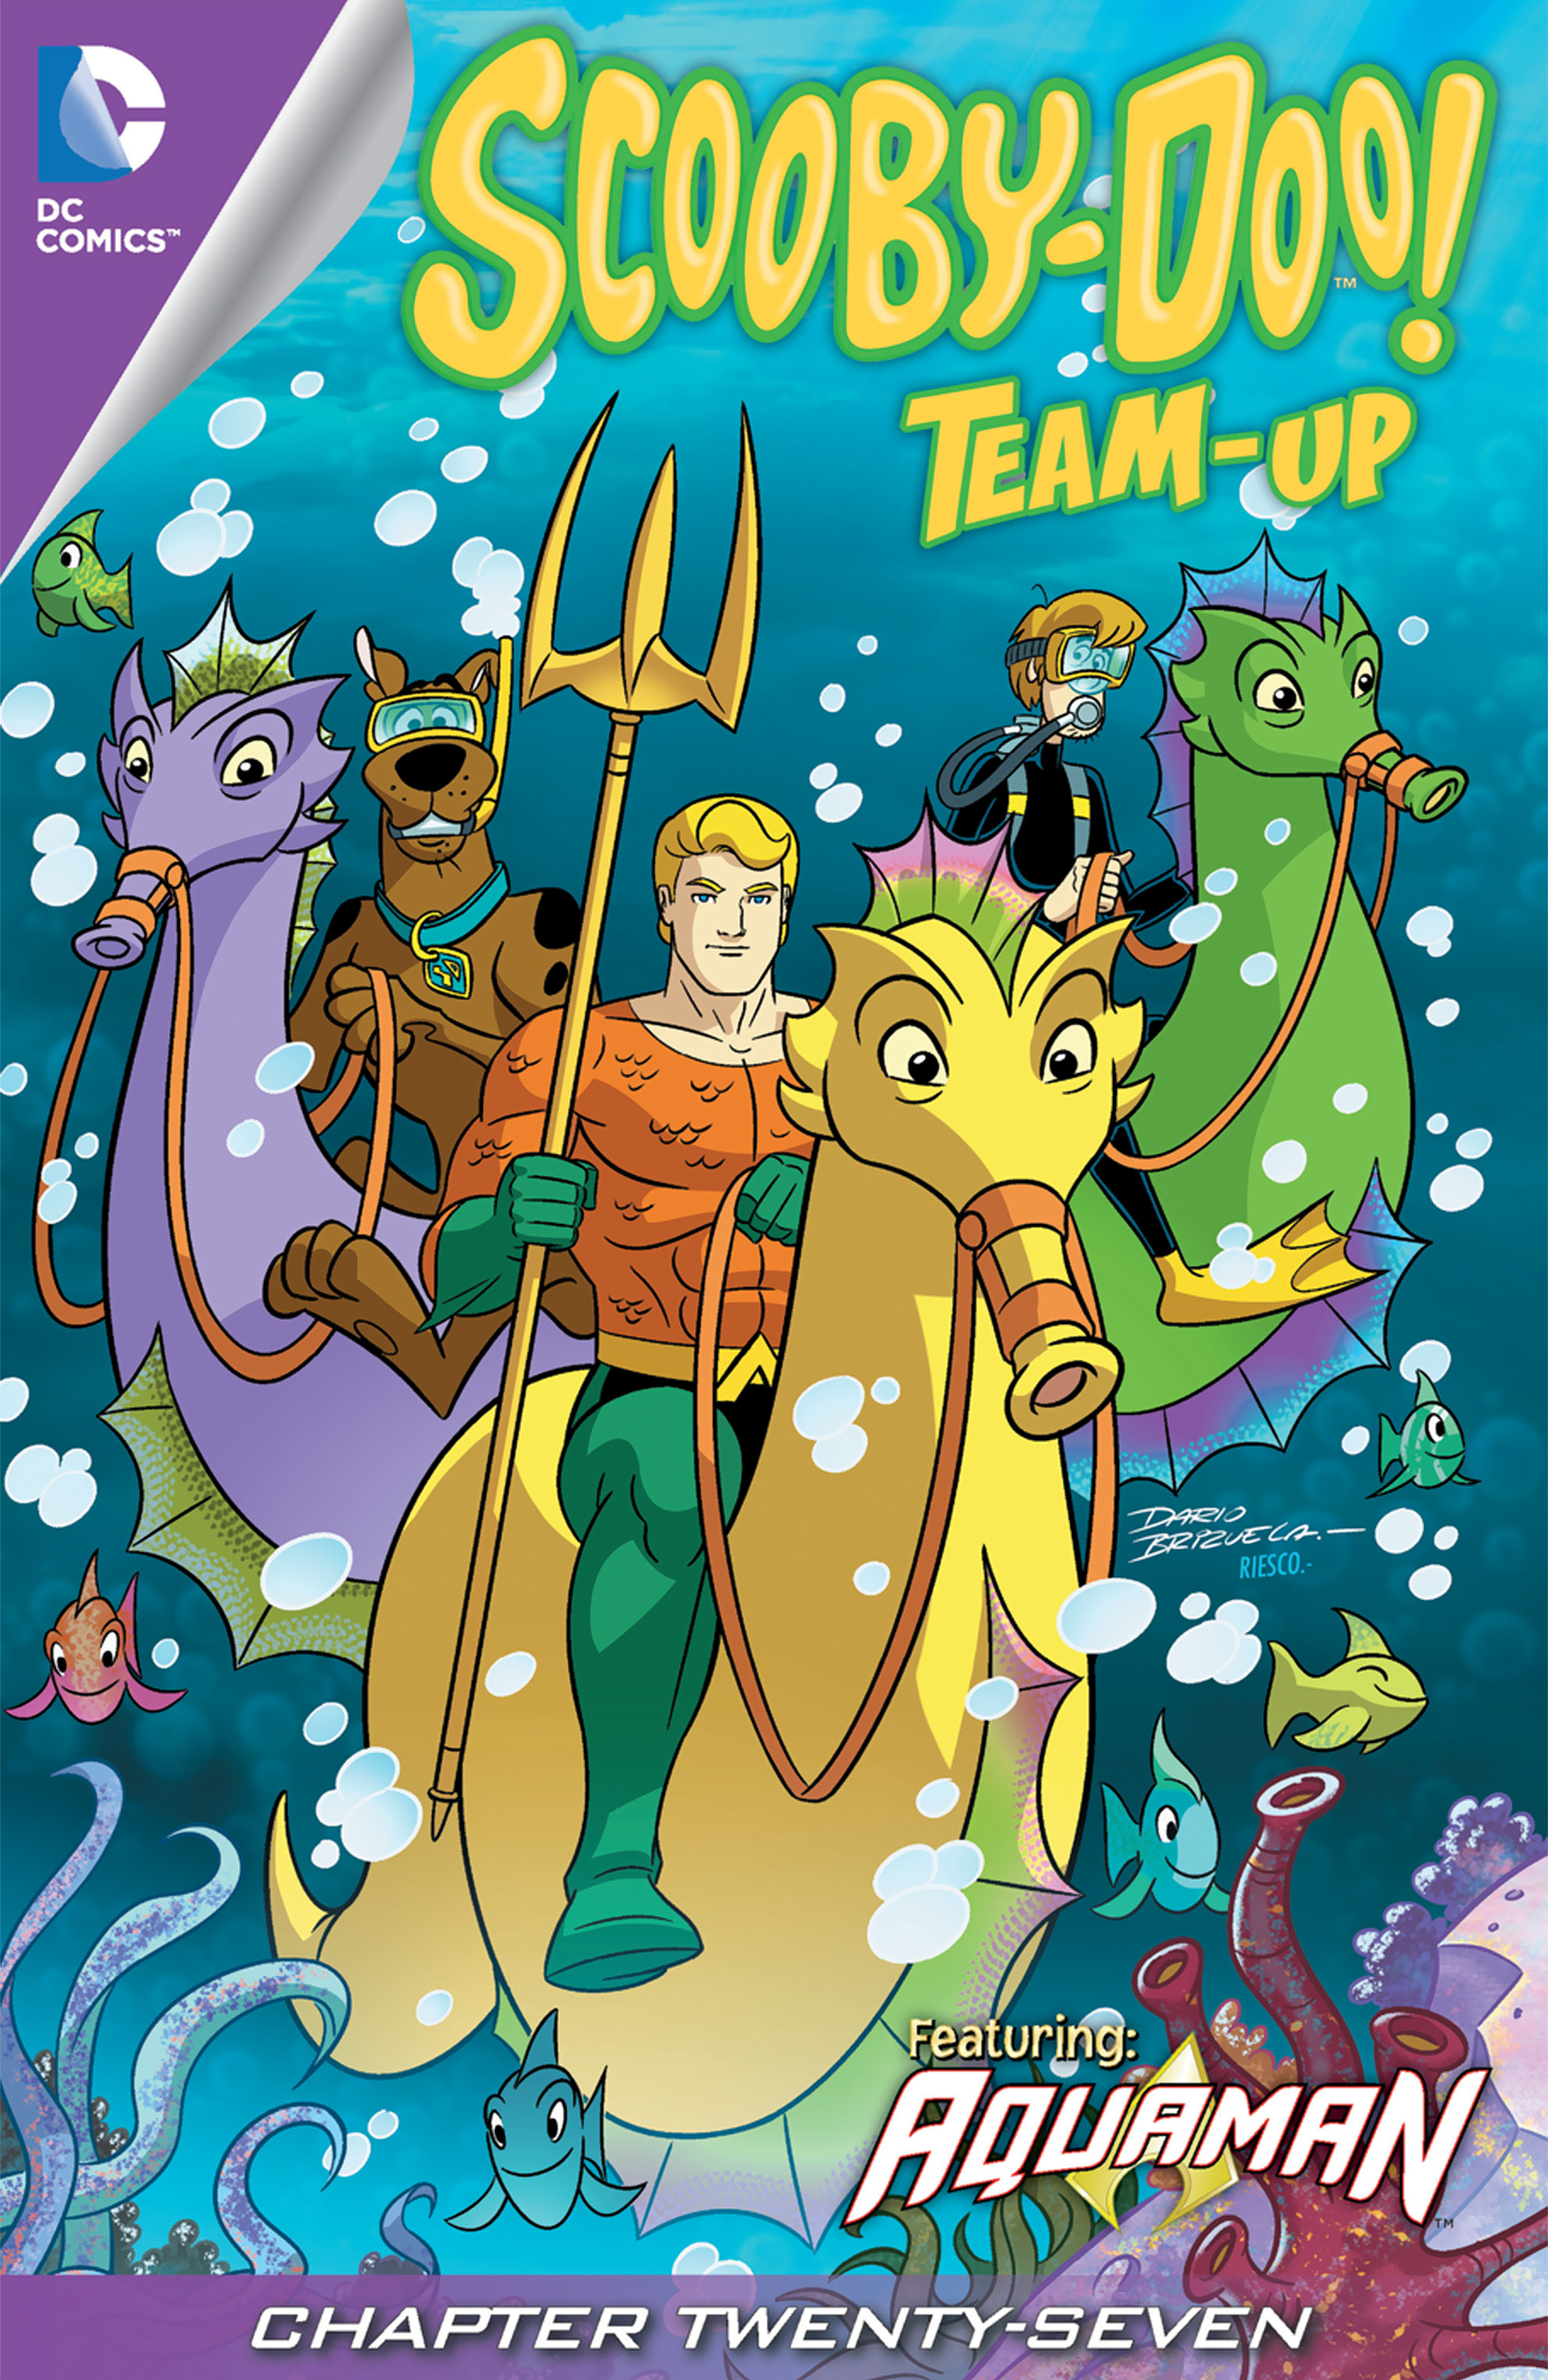 Read online Scooby-Doo! Team-Up comic -  Issue #27 - 2